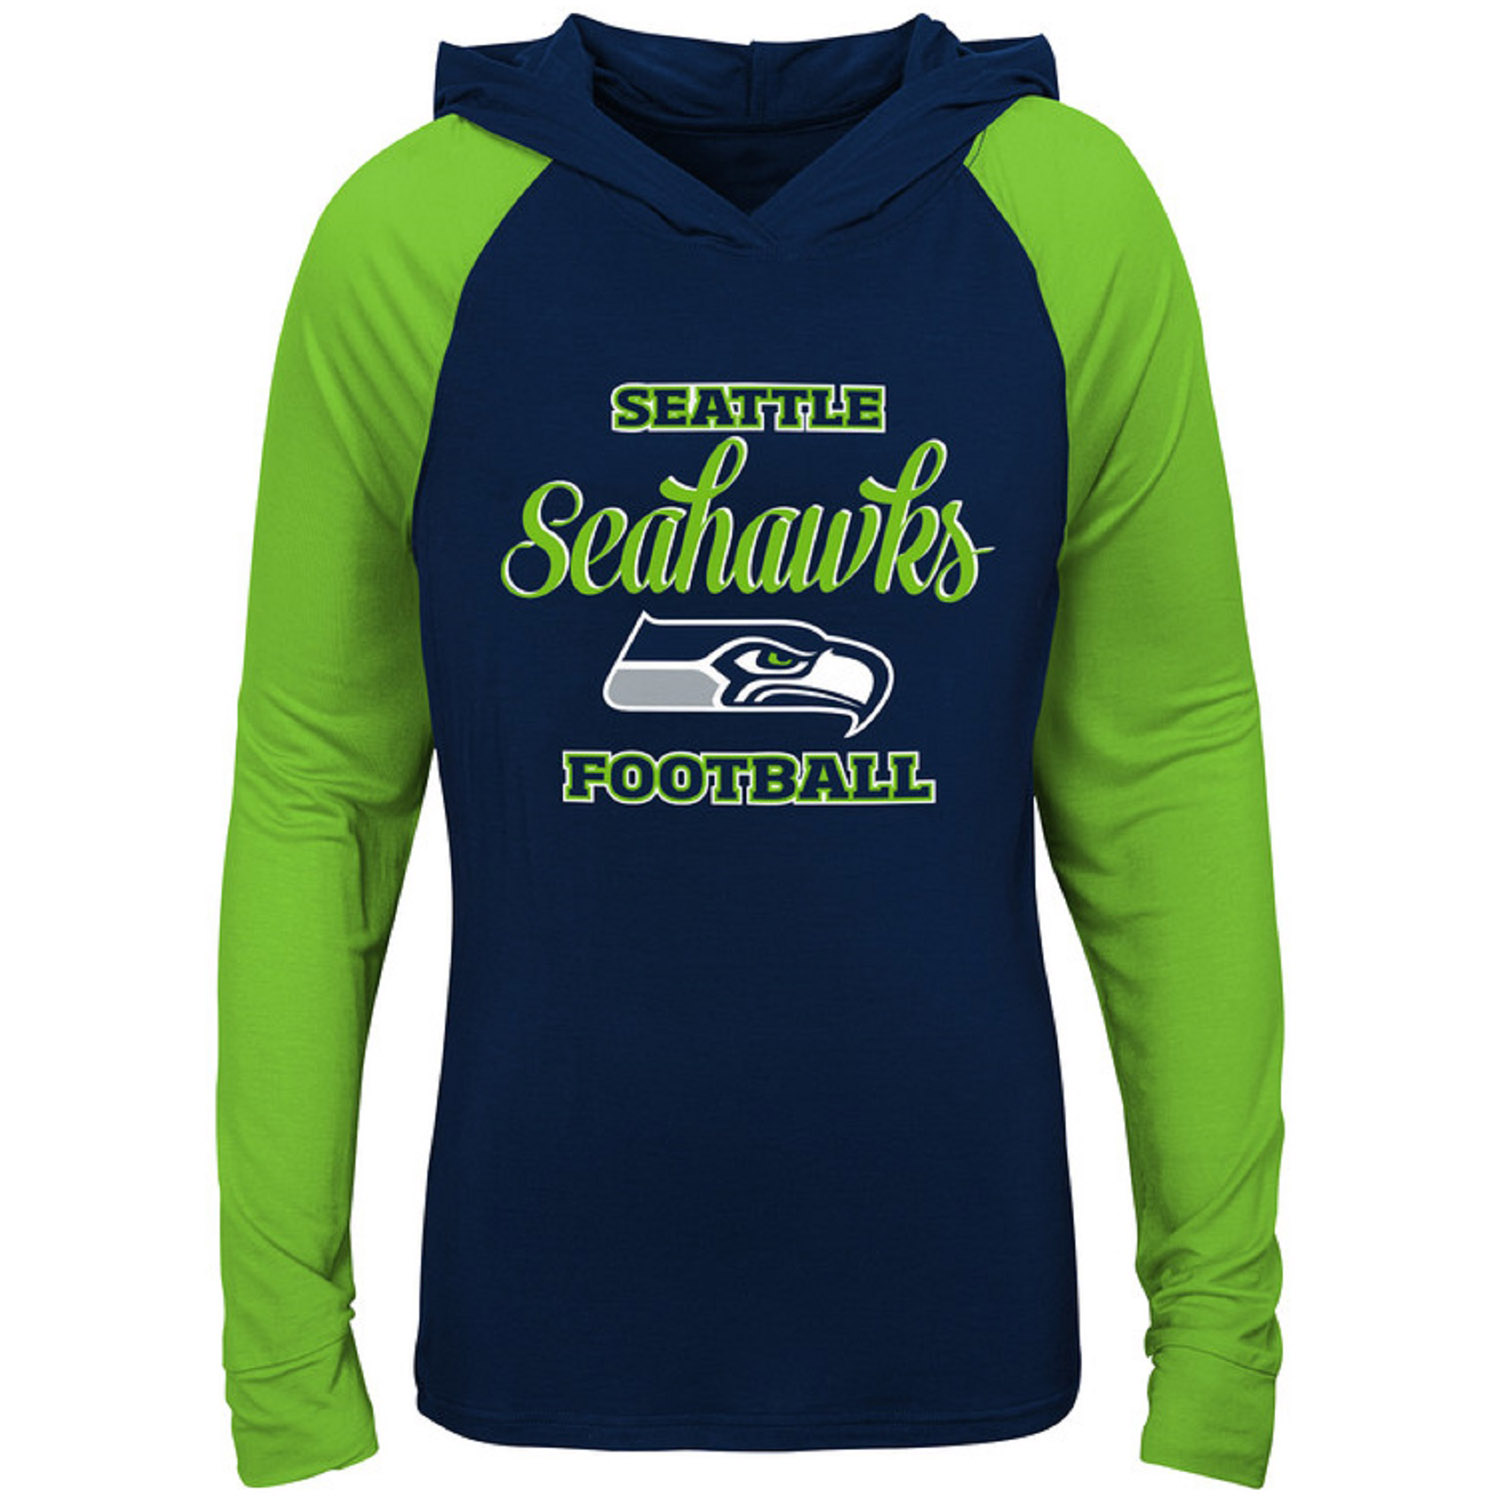 Girls Youth College Navy/Neon Green Seattle Seahawks Hooded Long Sleeve T-Shirt